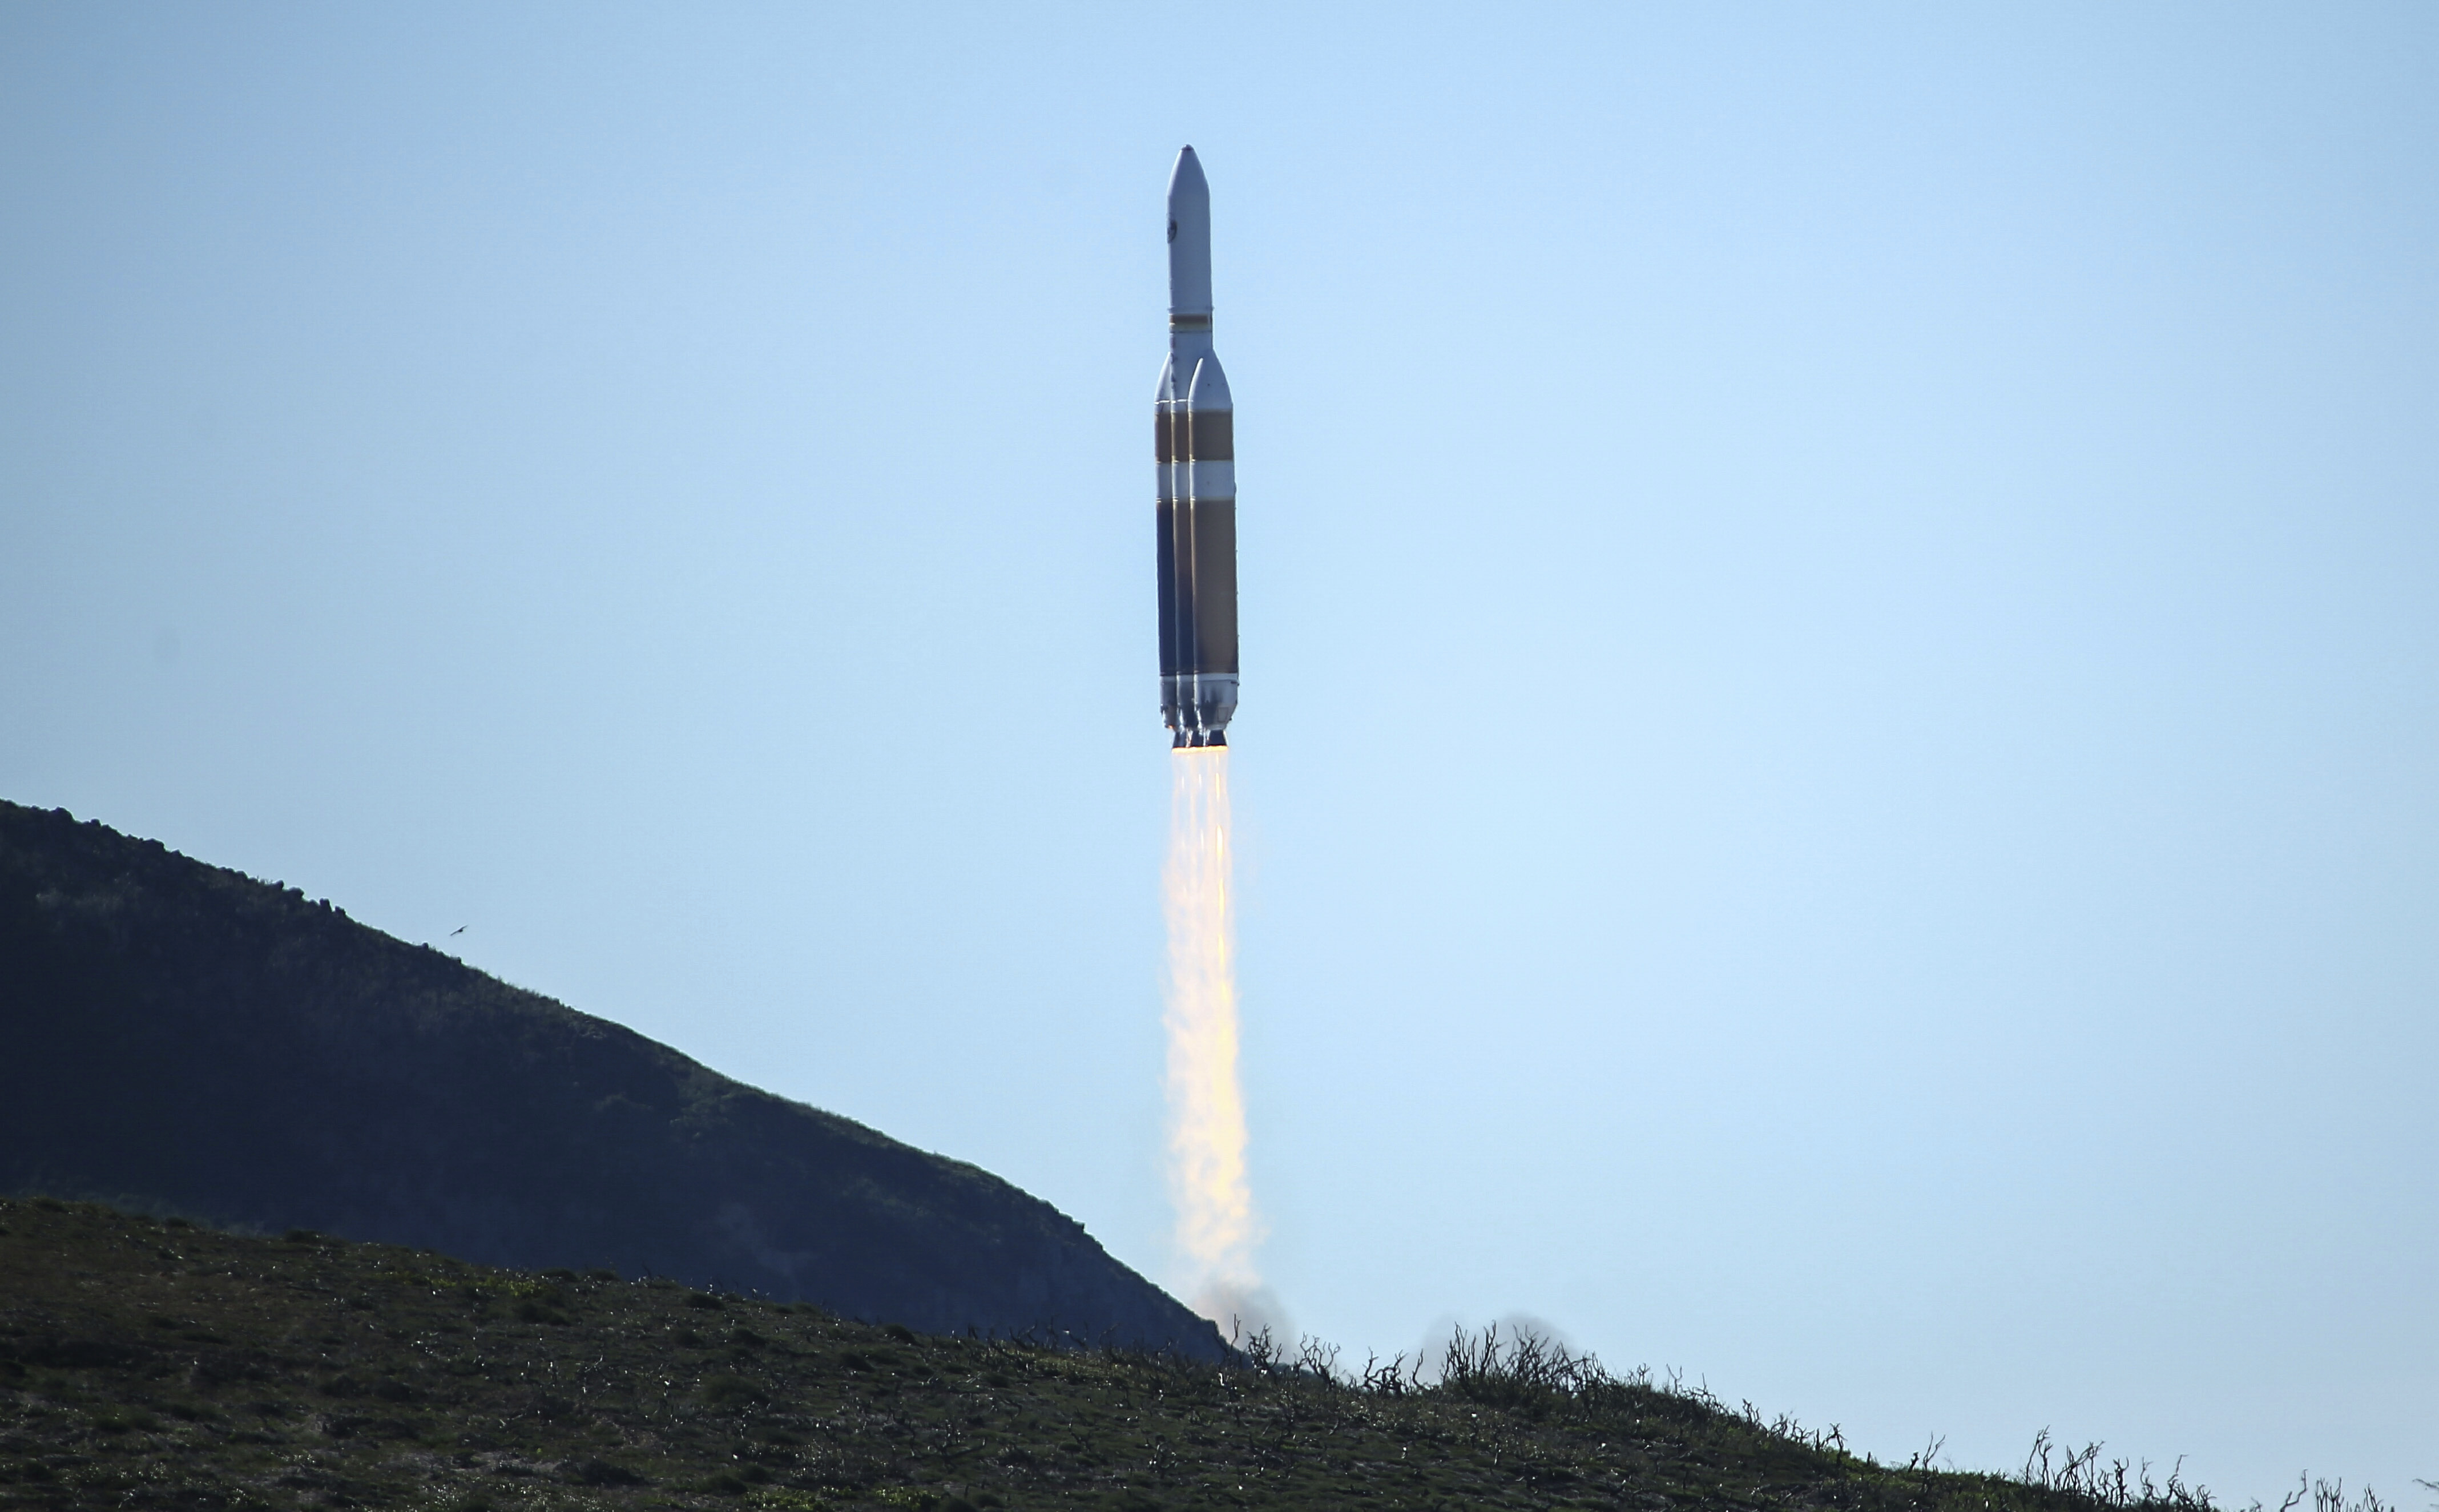 A powerful Delta 4 Heavy rocket carrying a U.S. spy satellite lifts off from Vandenberg Air Force Base in Calif., Saturday, Jan. 19, 2019. The rocket propelled the National Reconnaissance Office satellite at 11:10 a.m. Pacific time, arcing over the Pacific Ocean west of Los Angeles as it headed toward space. The United Launch Alliance Delta 4 Heavy is made up of 3 rocket cores strapped together producing almost 2.2 million pounds of thrust at lift-off. (AP Photo/Matt Hartman)